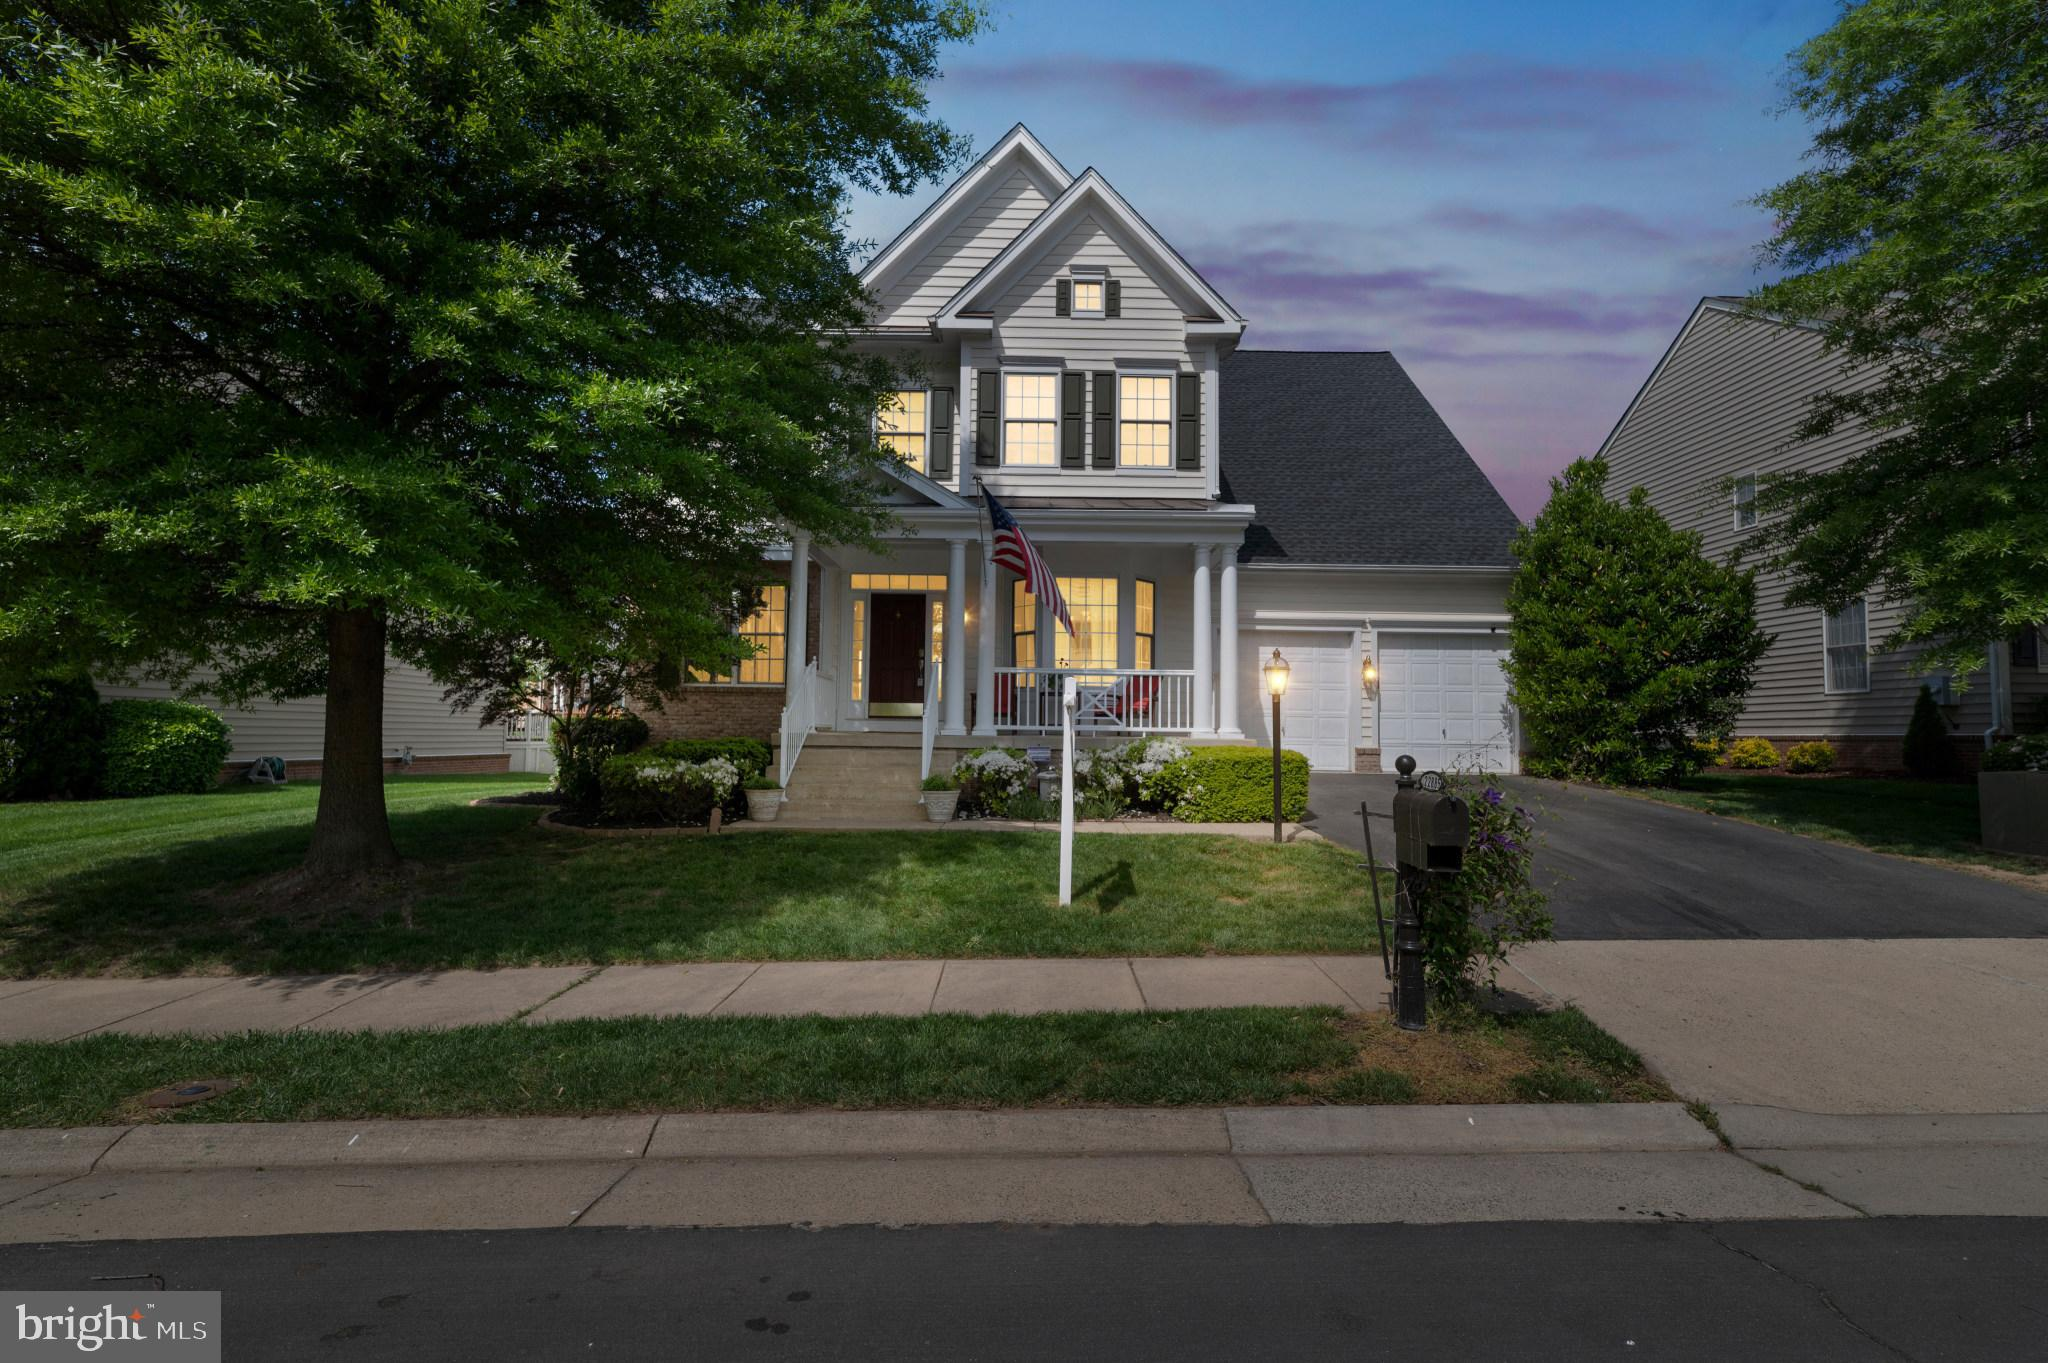 This stunning, spacious, and very warm home located in highly desirable Brambleton is a must see! Of